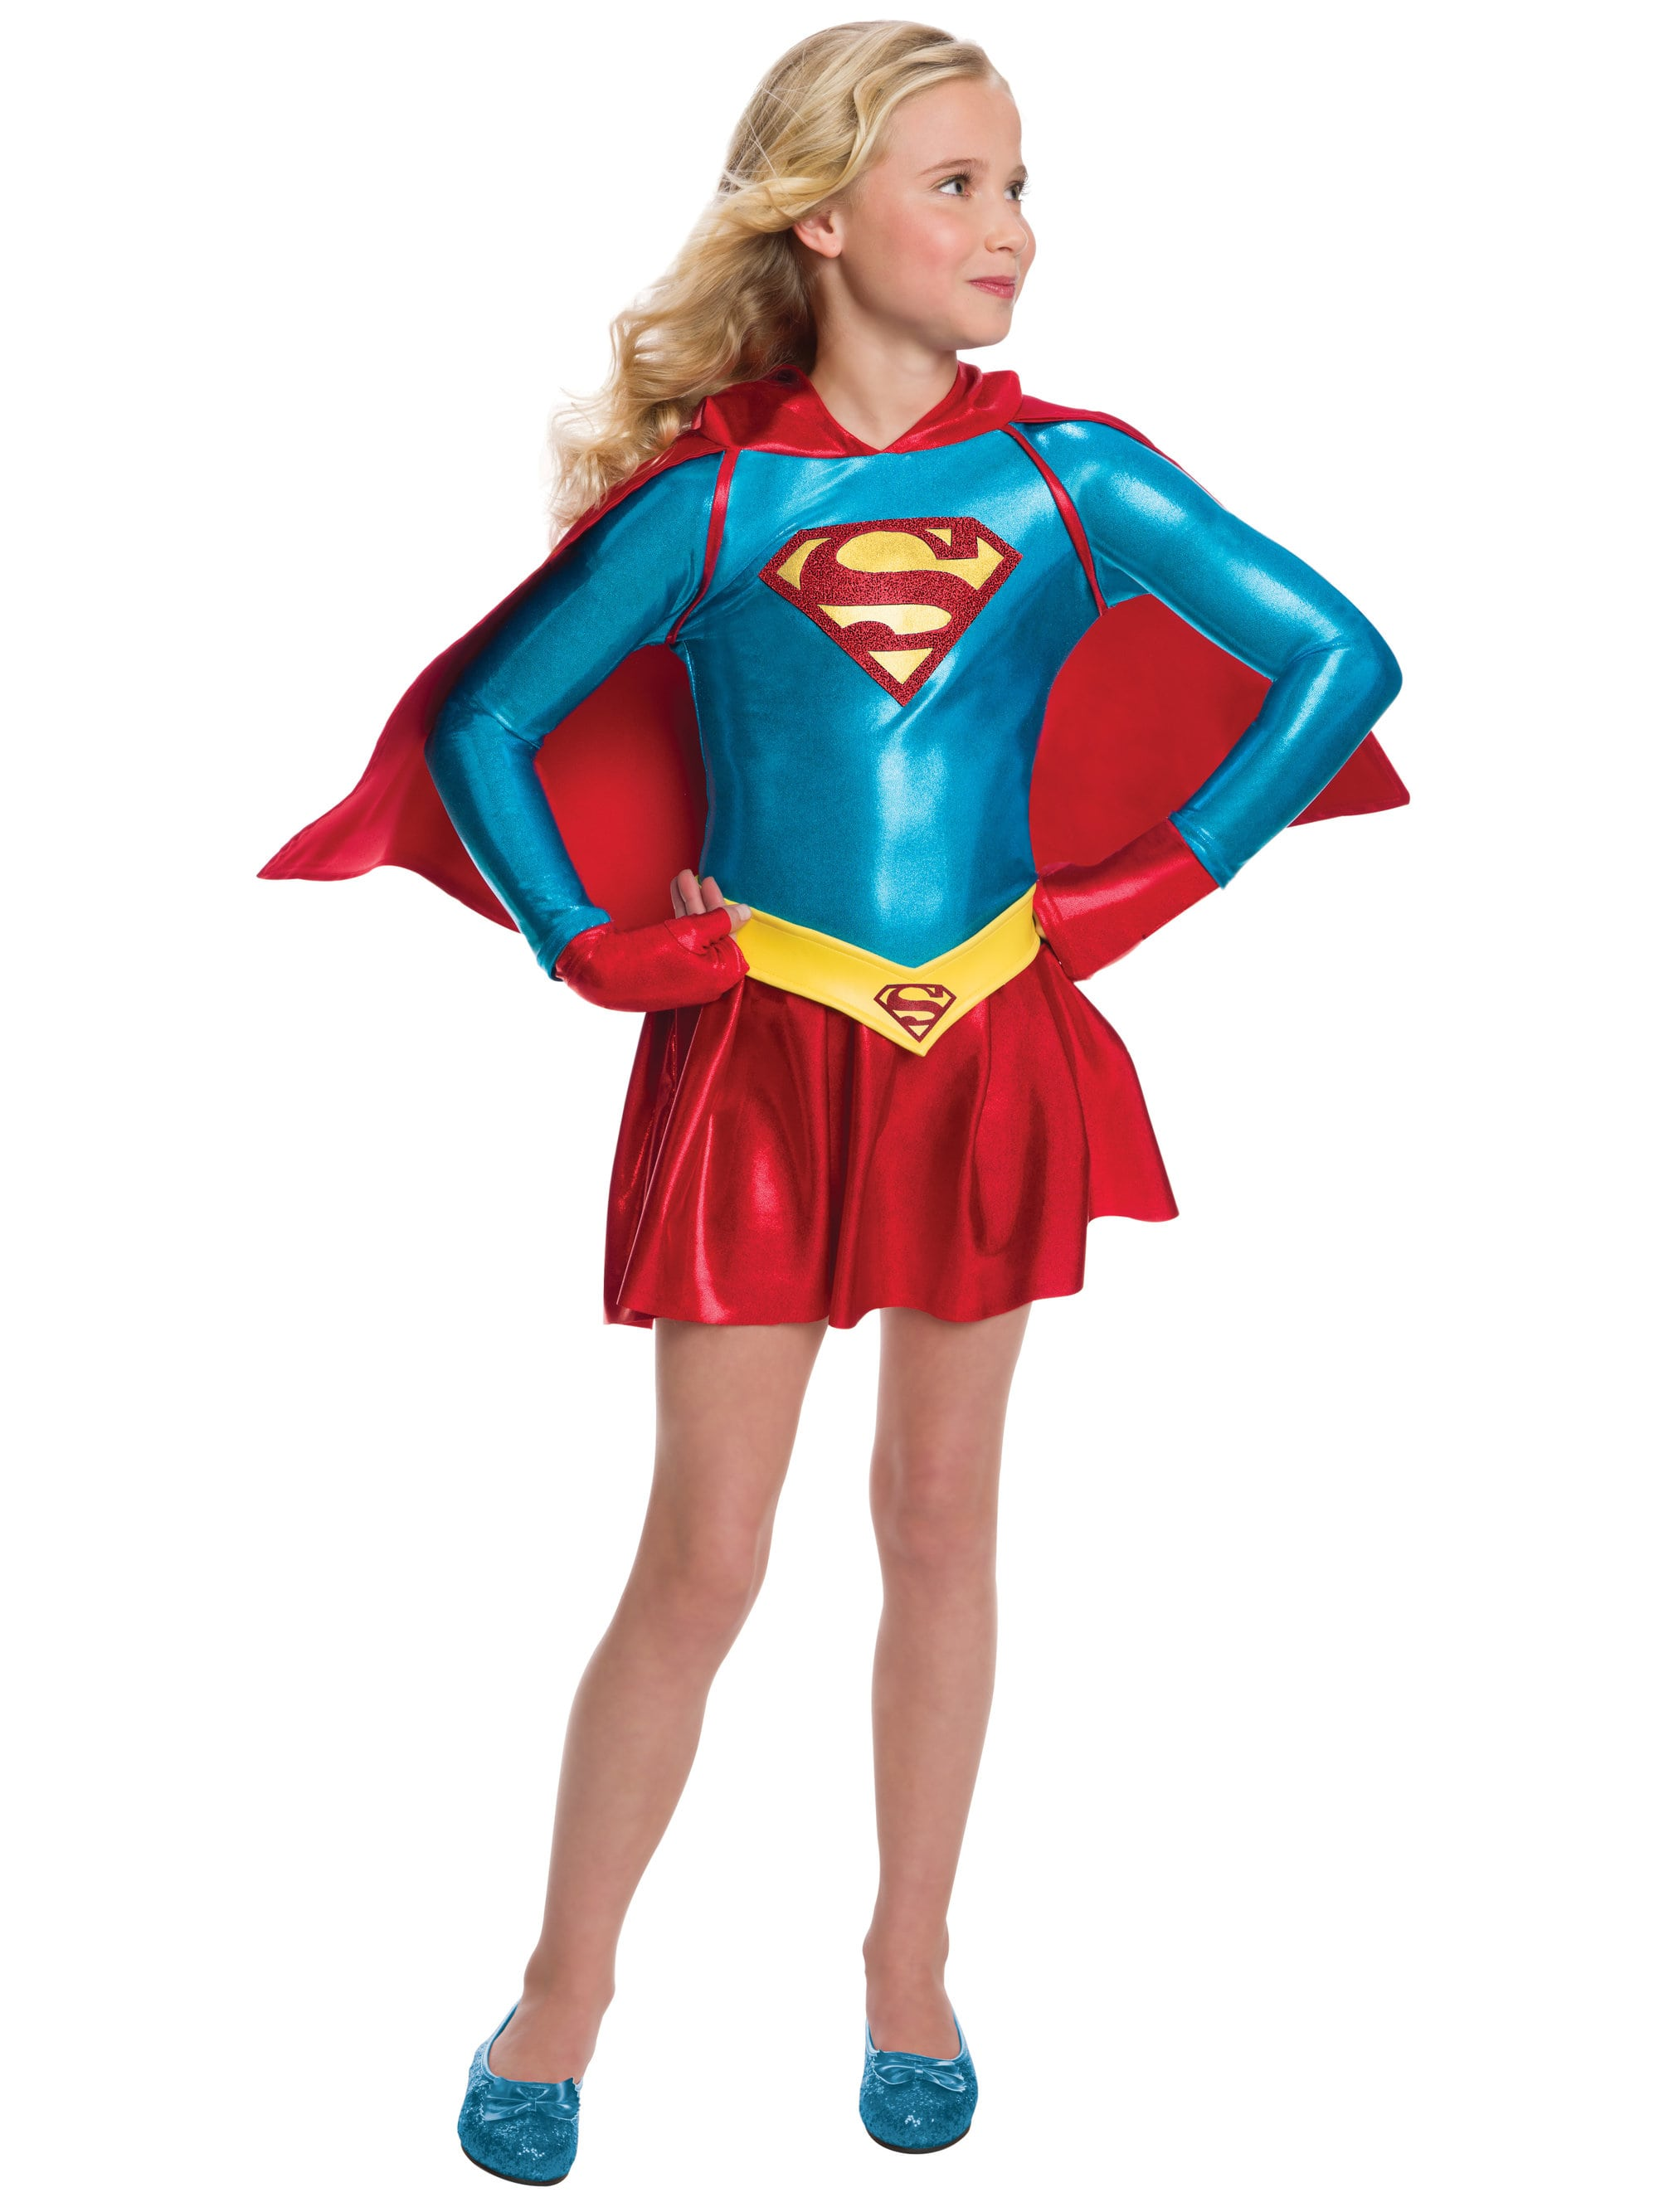 This kids Supergirl costume Imagine by Rubies DC Comics Supergirl Eyemask Children Costume Accessory. by Imagine by Rubie's. $ $ 11 83 Prime. FREE Shipping on eligible orders. More Buying Choices. $ (2 new offers) 5 out of 5 stars 3. Manufacturer recommended age: 3 - 10 Years.